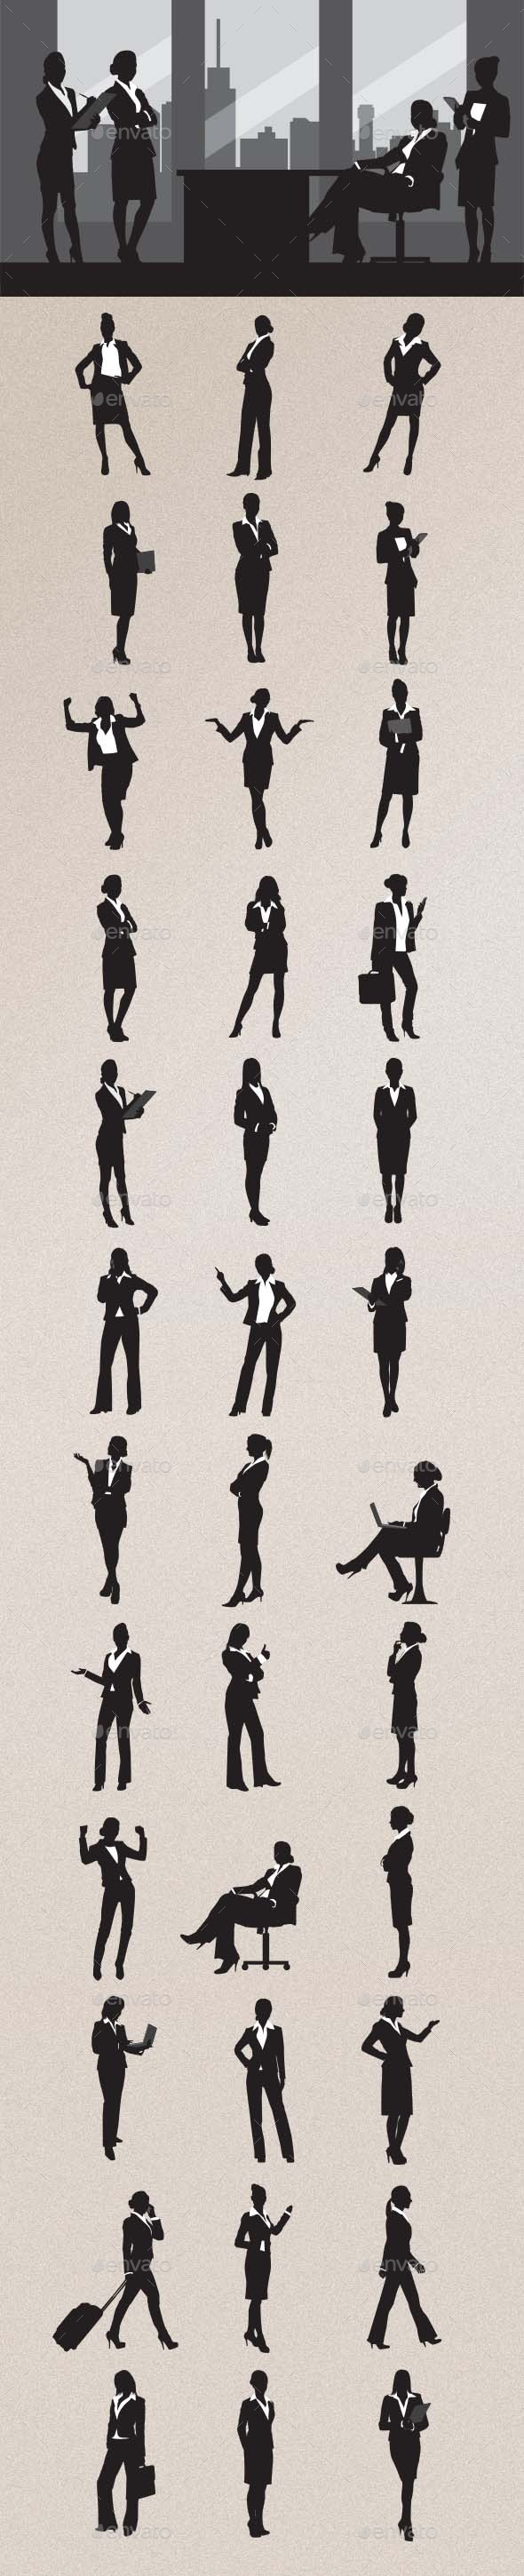 Business Woman Silhouettes - People Characters